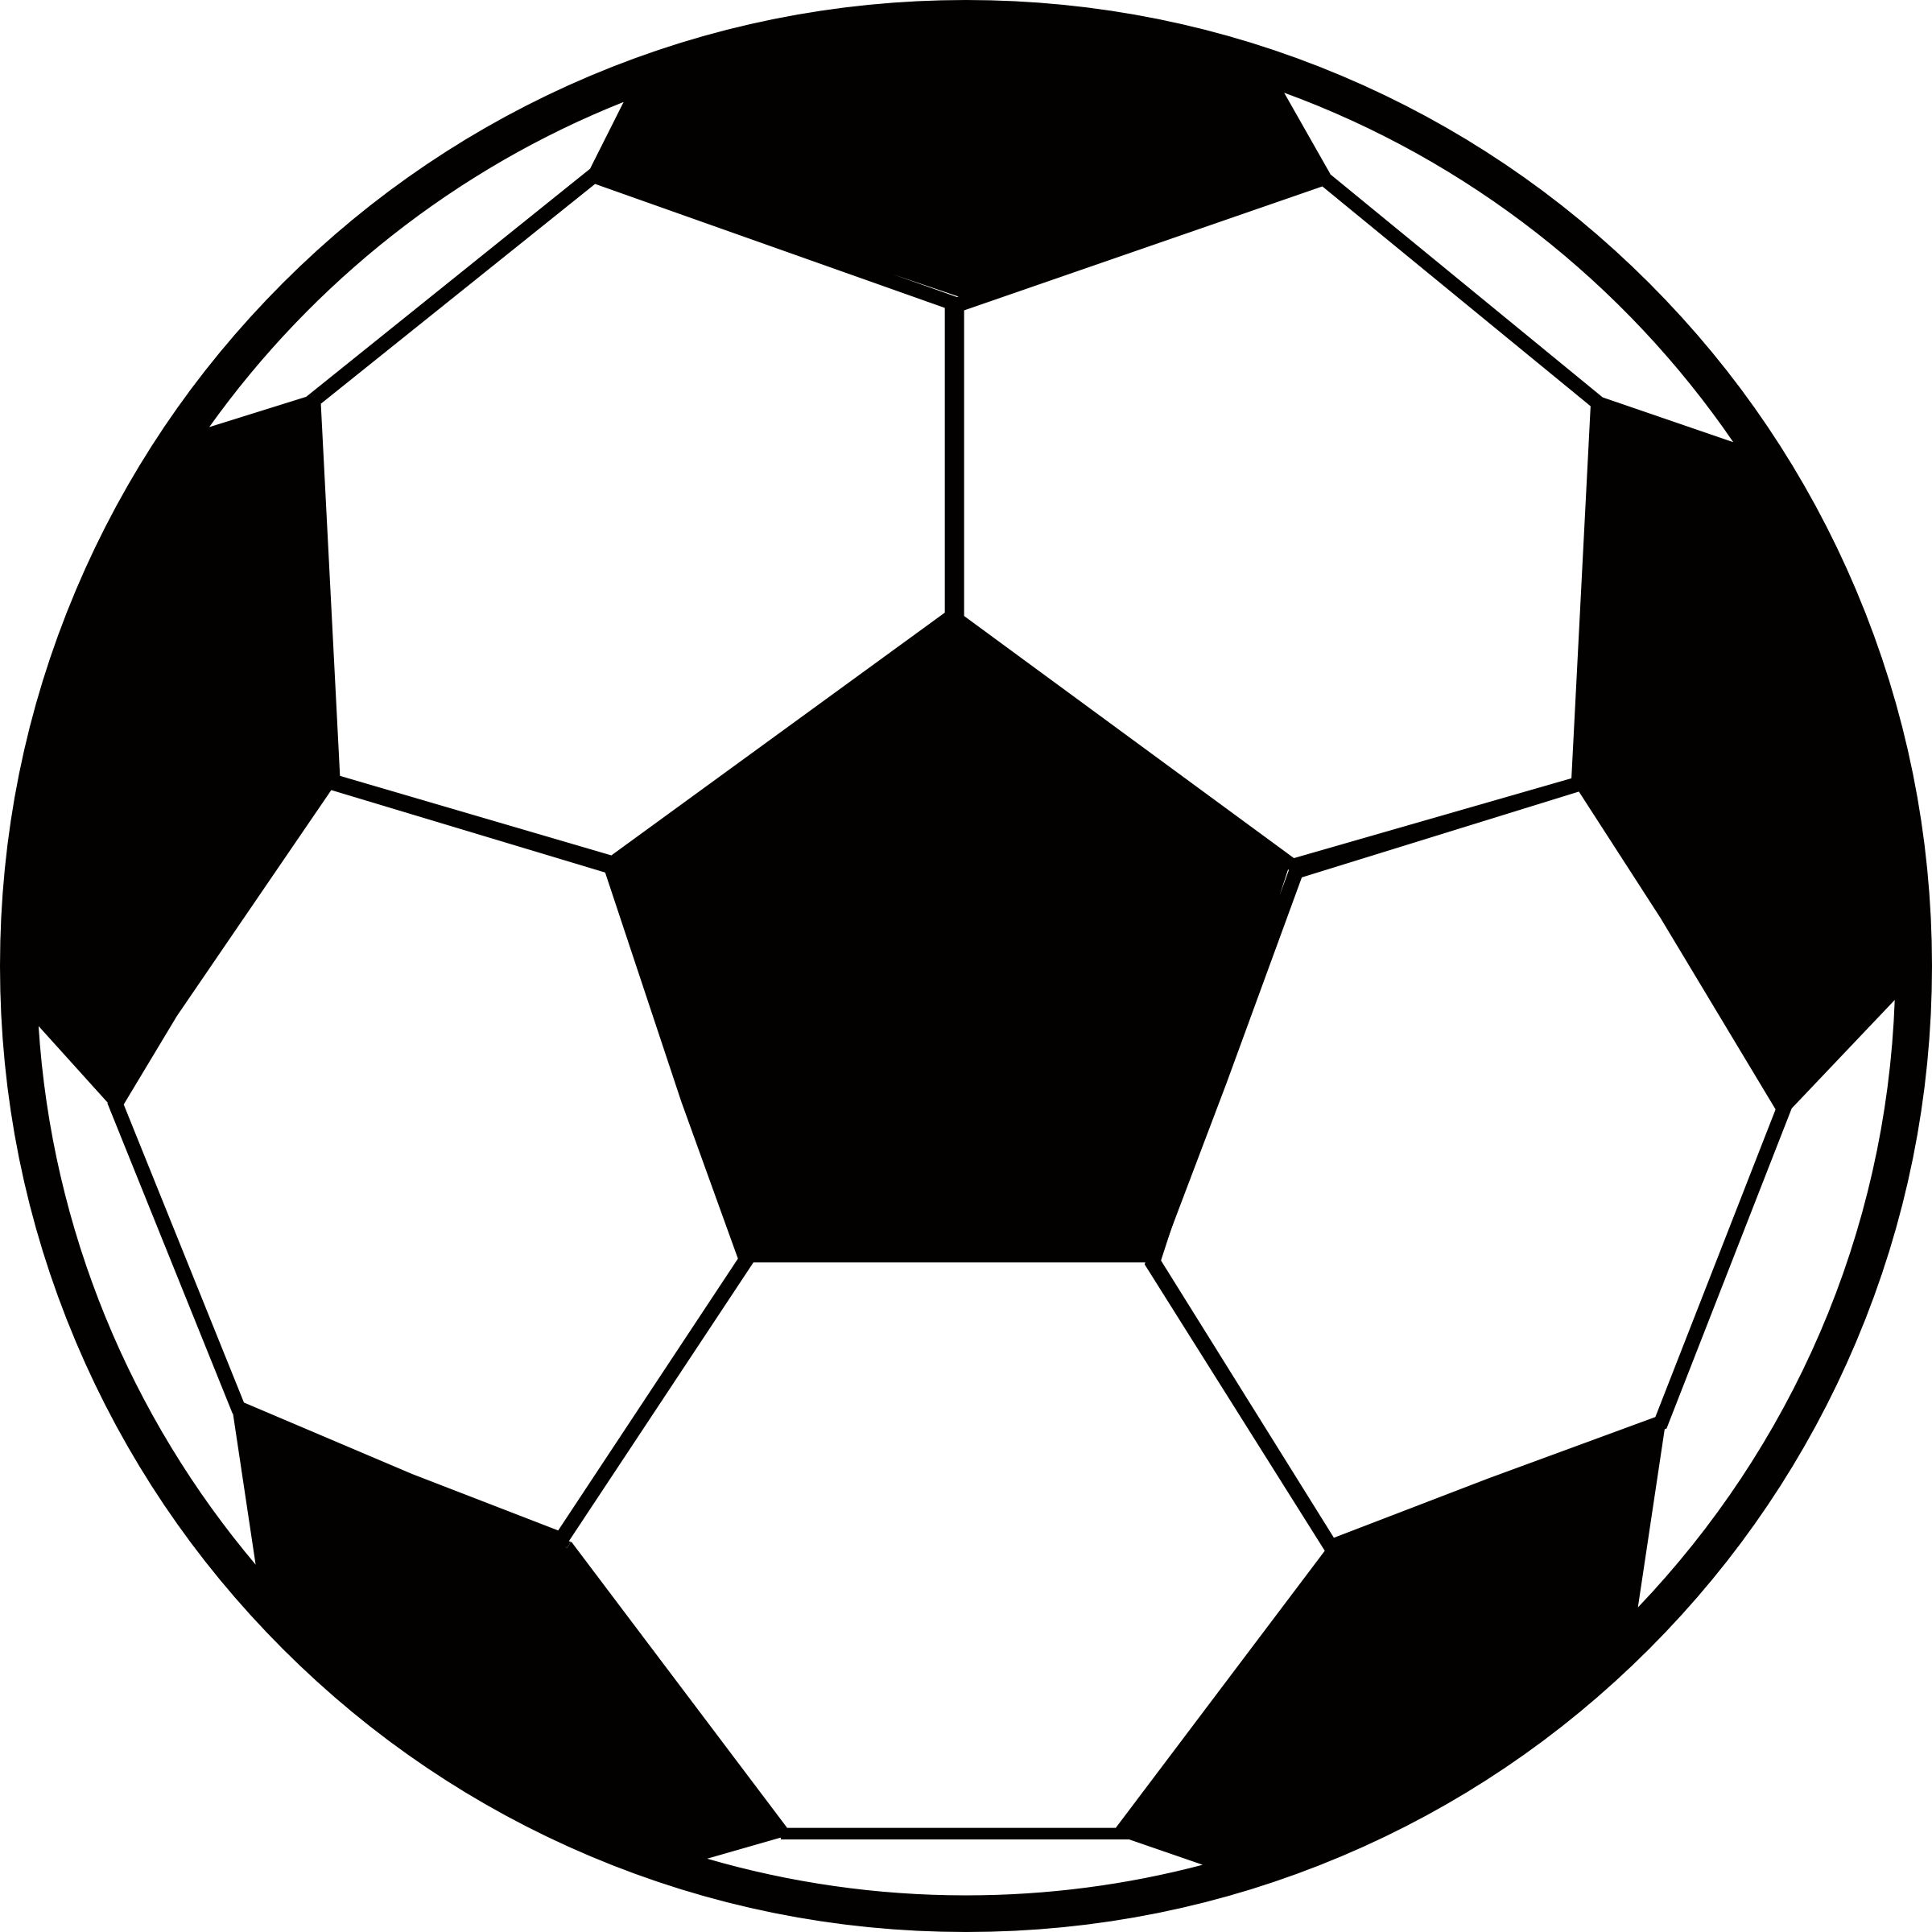 image transparent stock Playing clipart soccer kick. Ball free on dumielauxepices